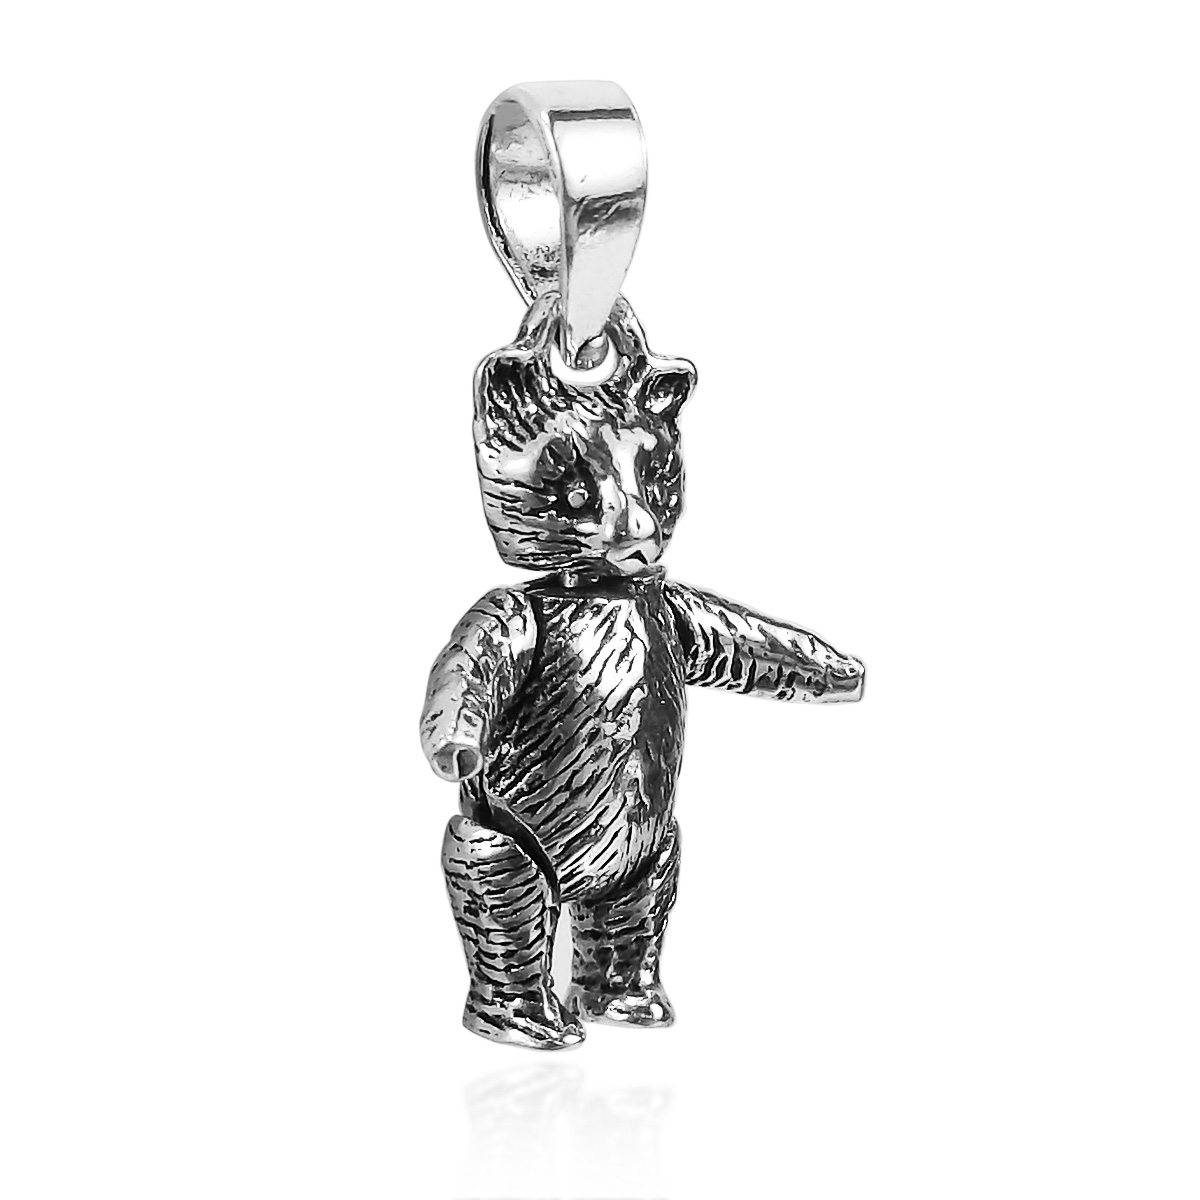 Charming movable teddy bear 925 sterling silver pendant aeravida this amazing teddy bear pendant is hand made with sterling silver and features movable appendages makes a wonderful gift for someone special in your life aloadofball Images